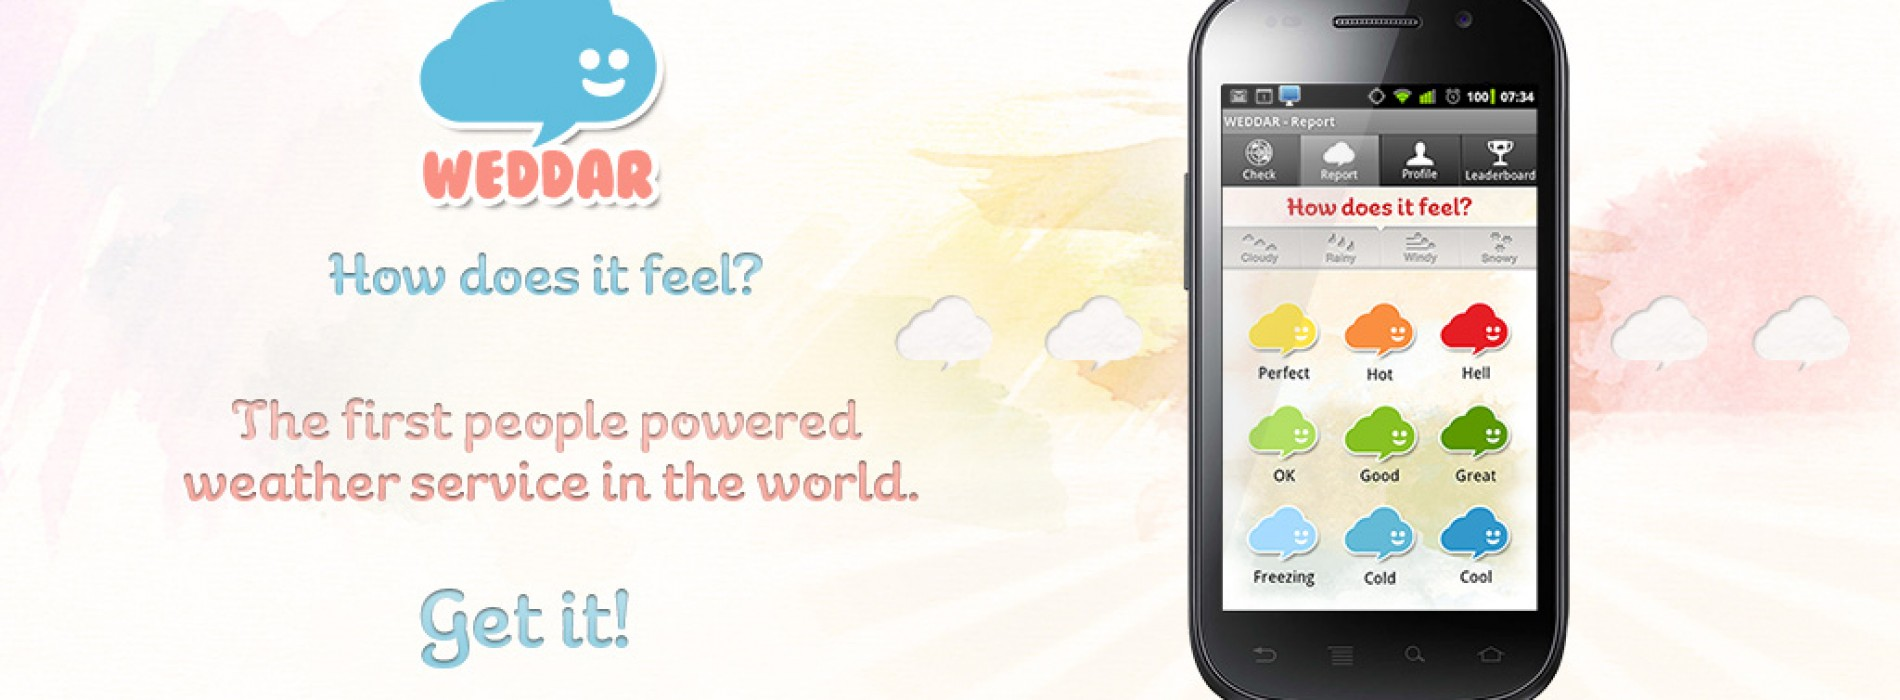 Weddar's crowd-sourced weather comes to Android